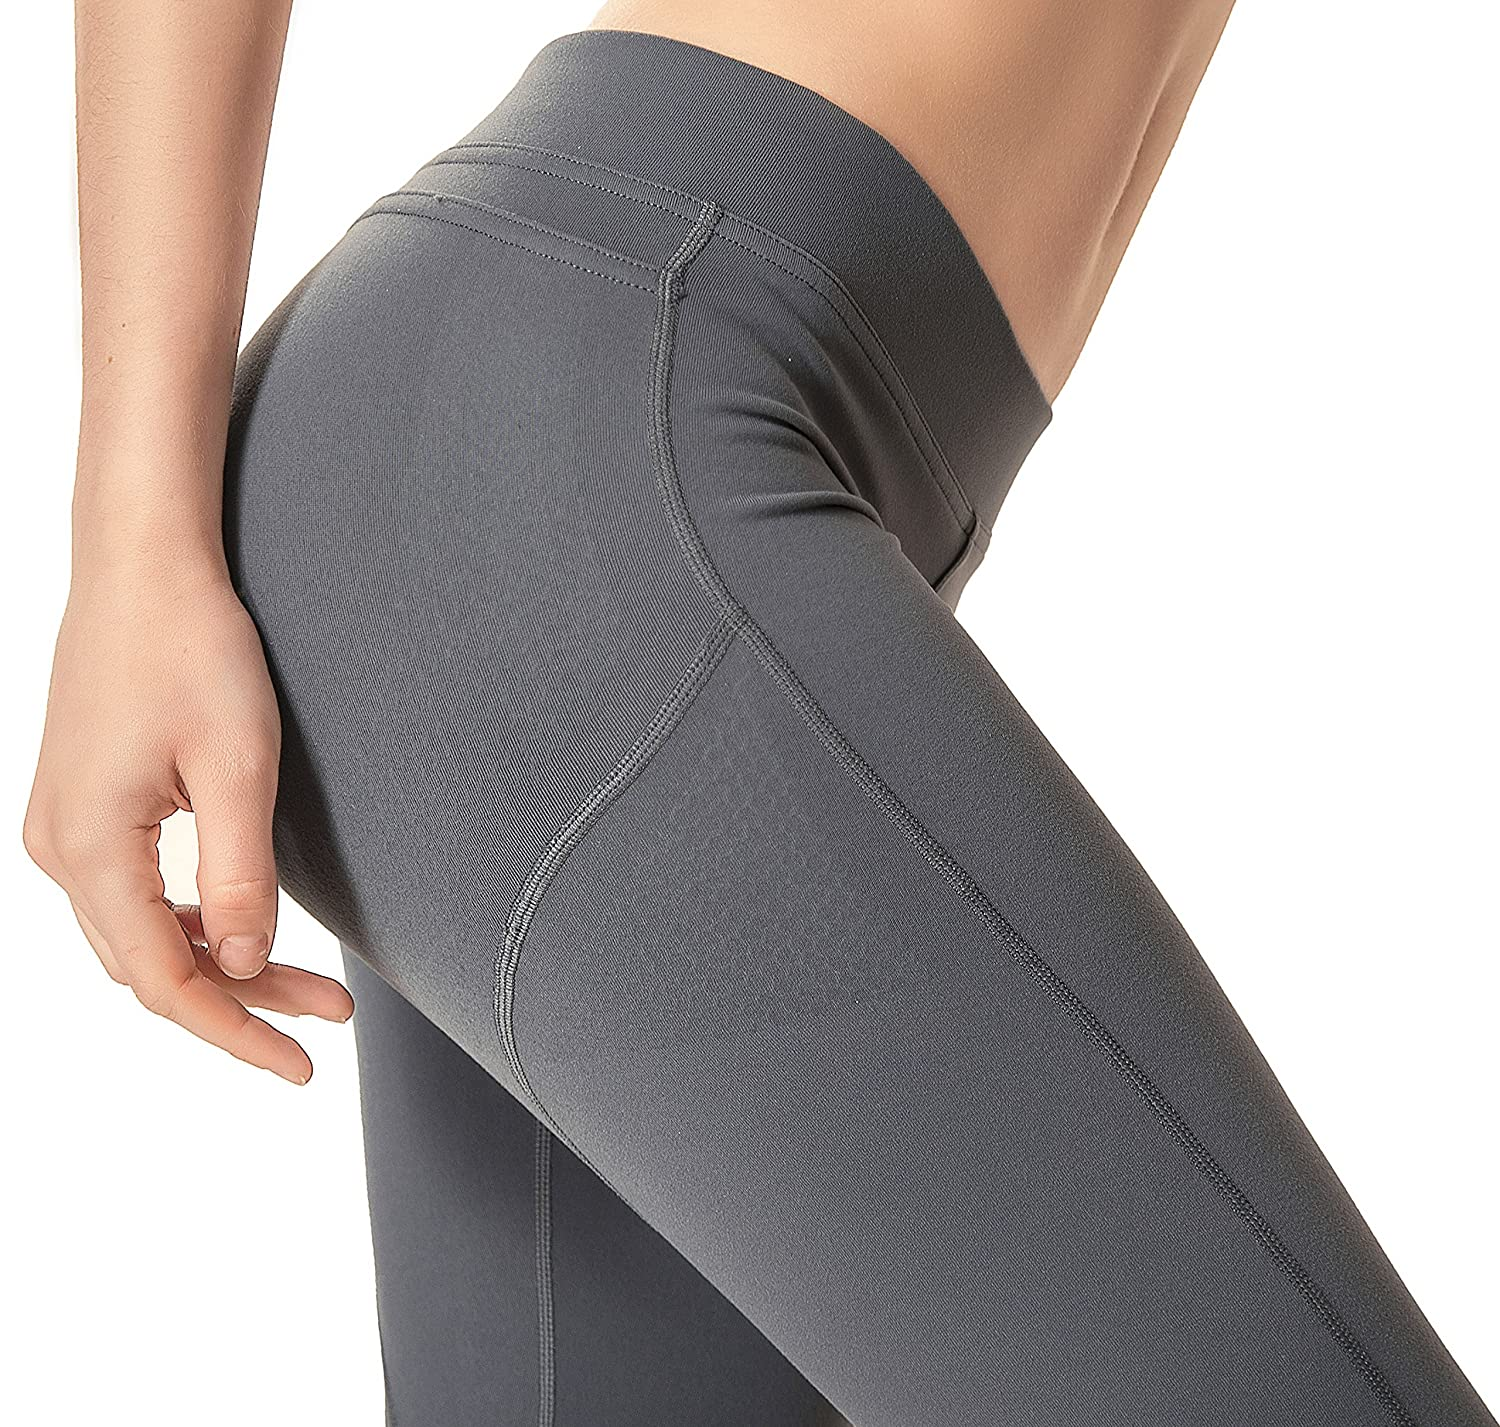 352cbf3b86f7c RUNNING GIRL Butt Lift Leggings Scrunch Butt Push Up Leggings Yoga Pants  for Women Workout Tights at Amazon Women's Clothing store: